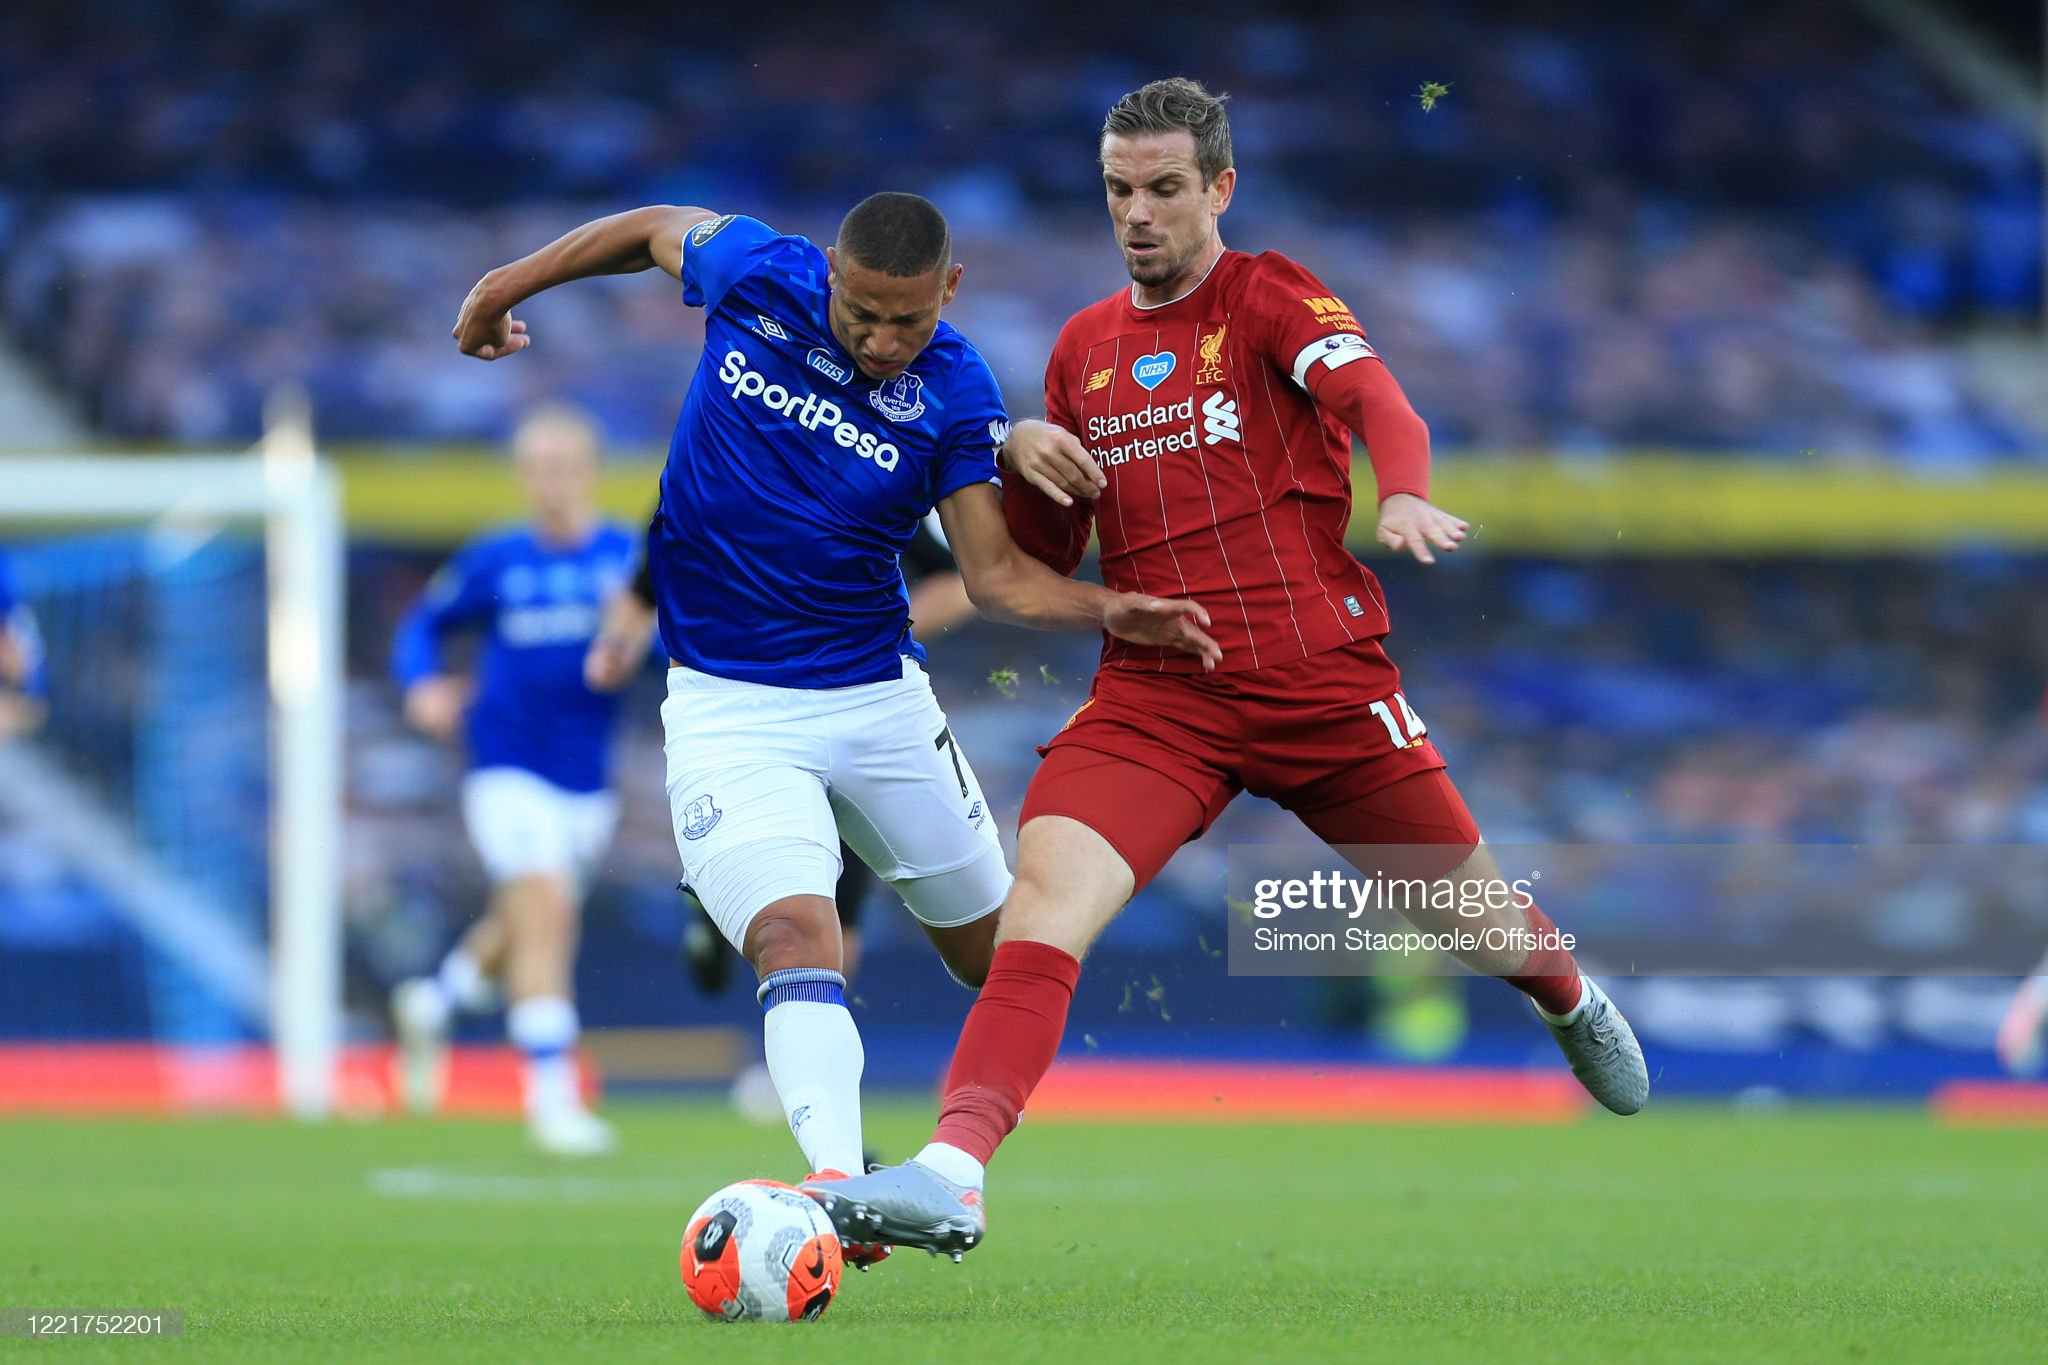 Liverpool vs Everton preview, prediction and odds